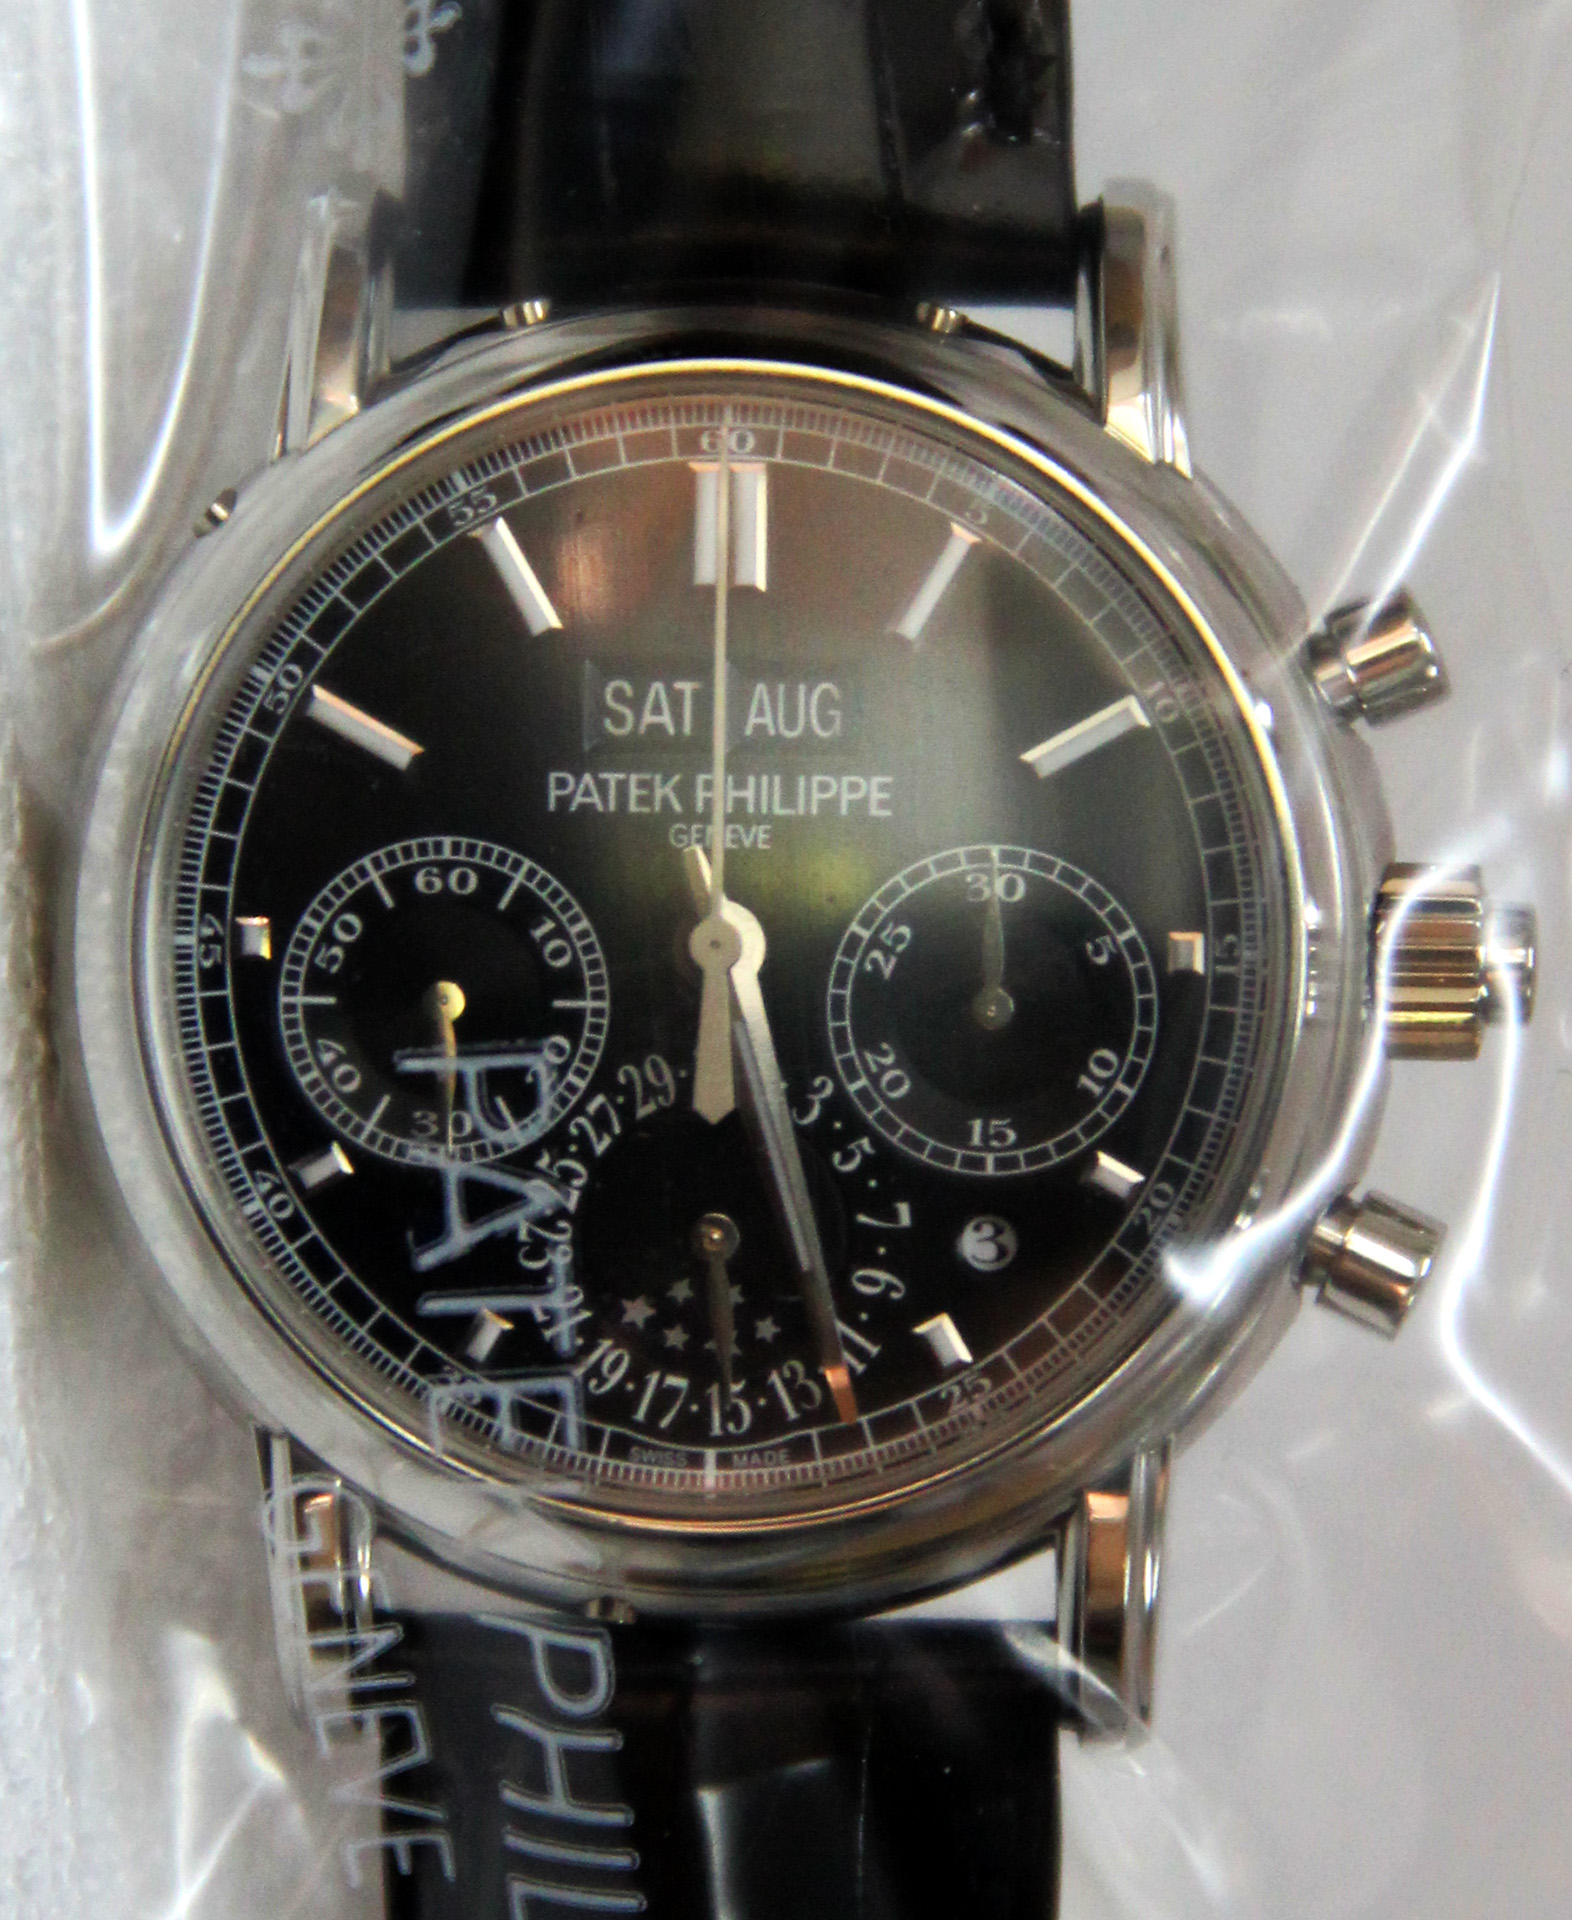 newest 9b916 cc9e6 SPLIT-SECONDS CHRONO PERPETUAL CALENDAR (REF: 5204P-011 ...